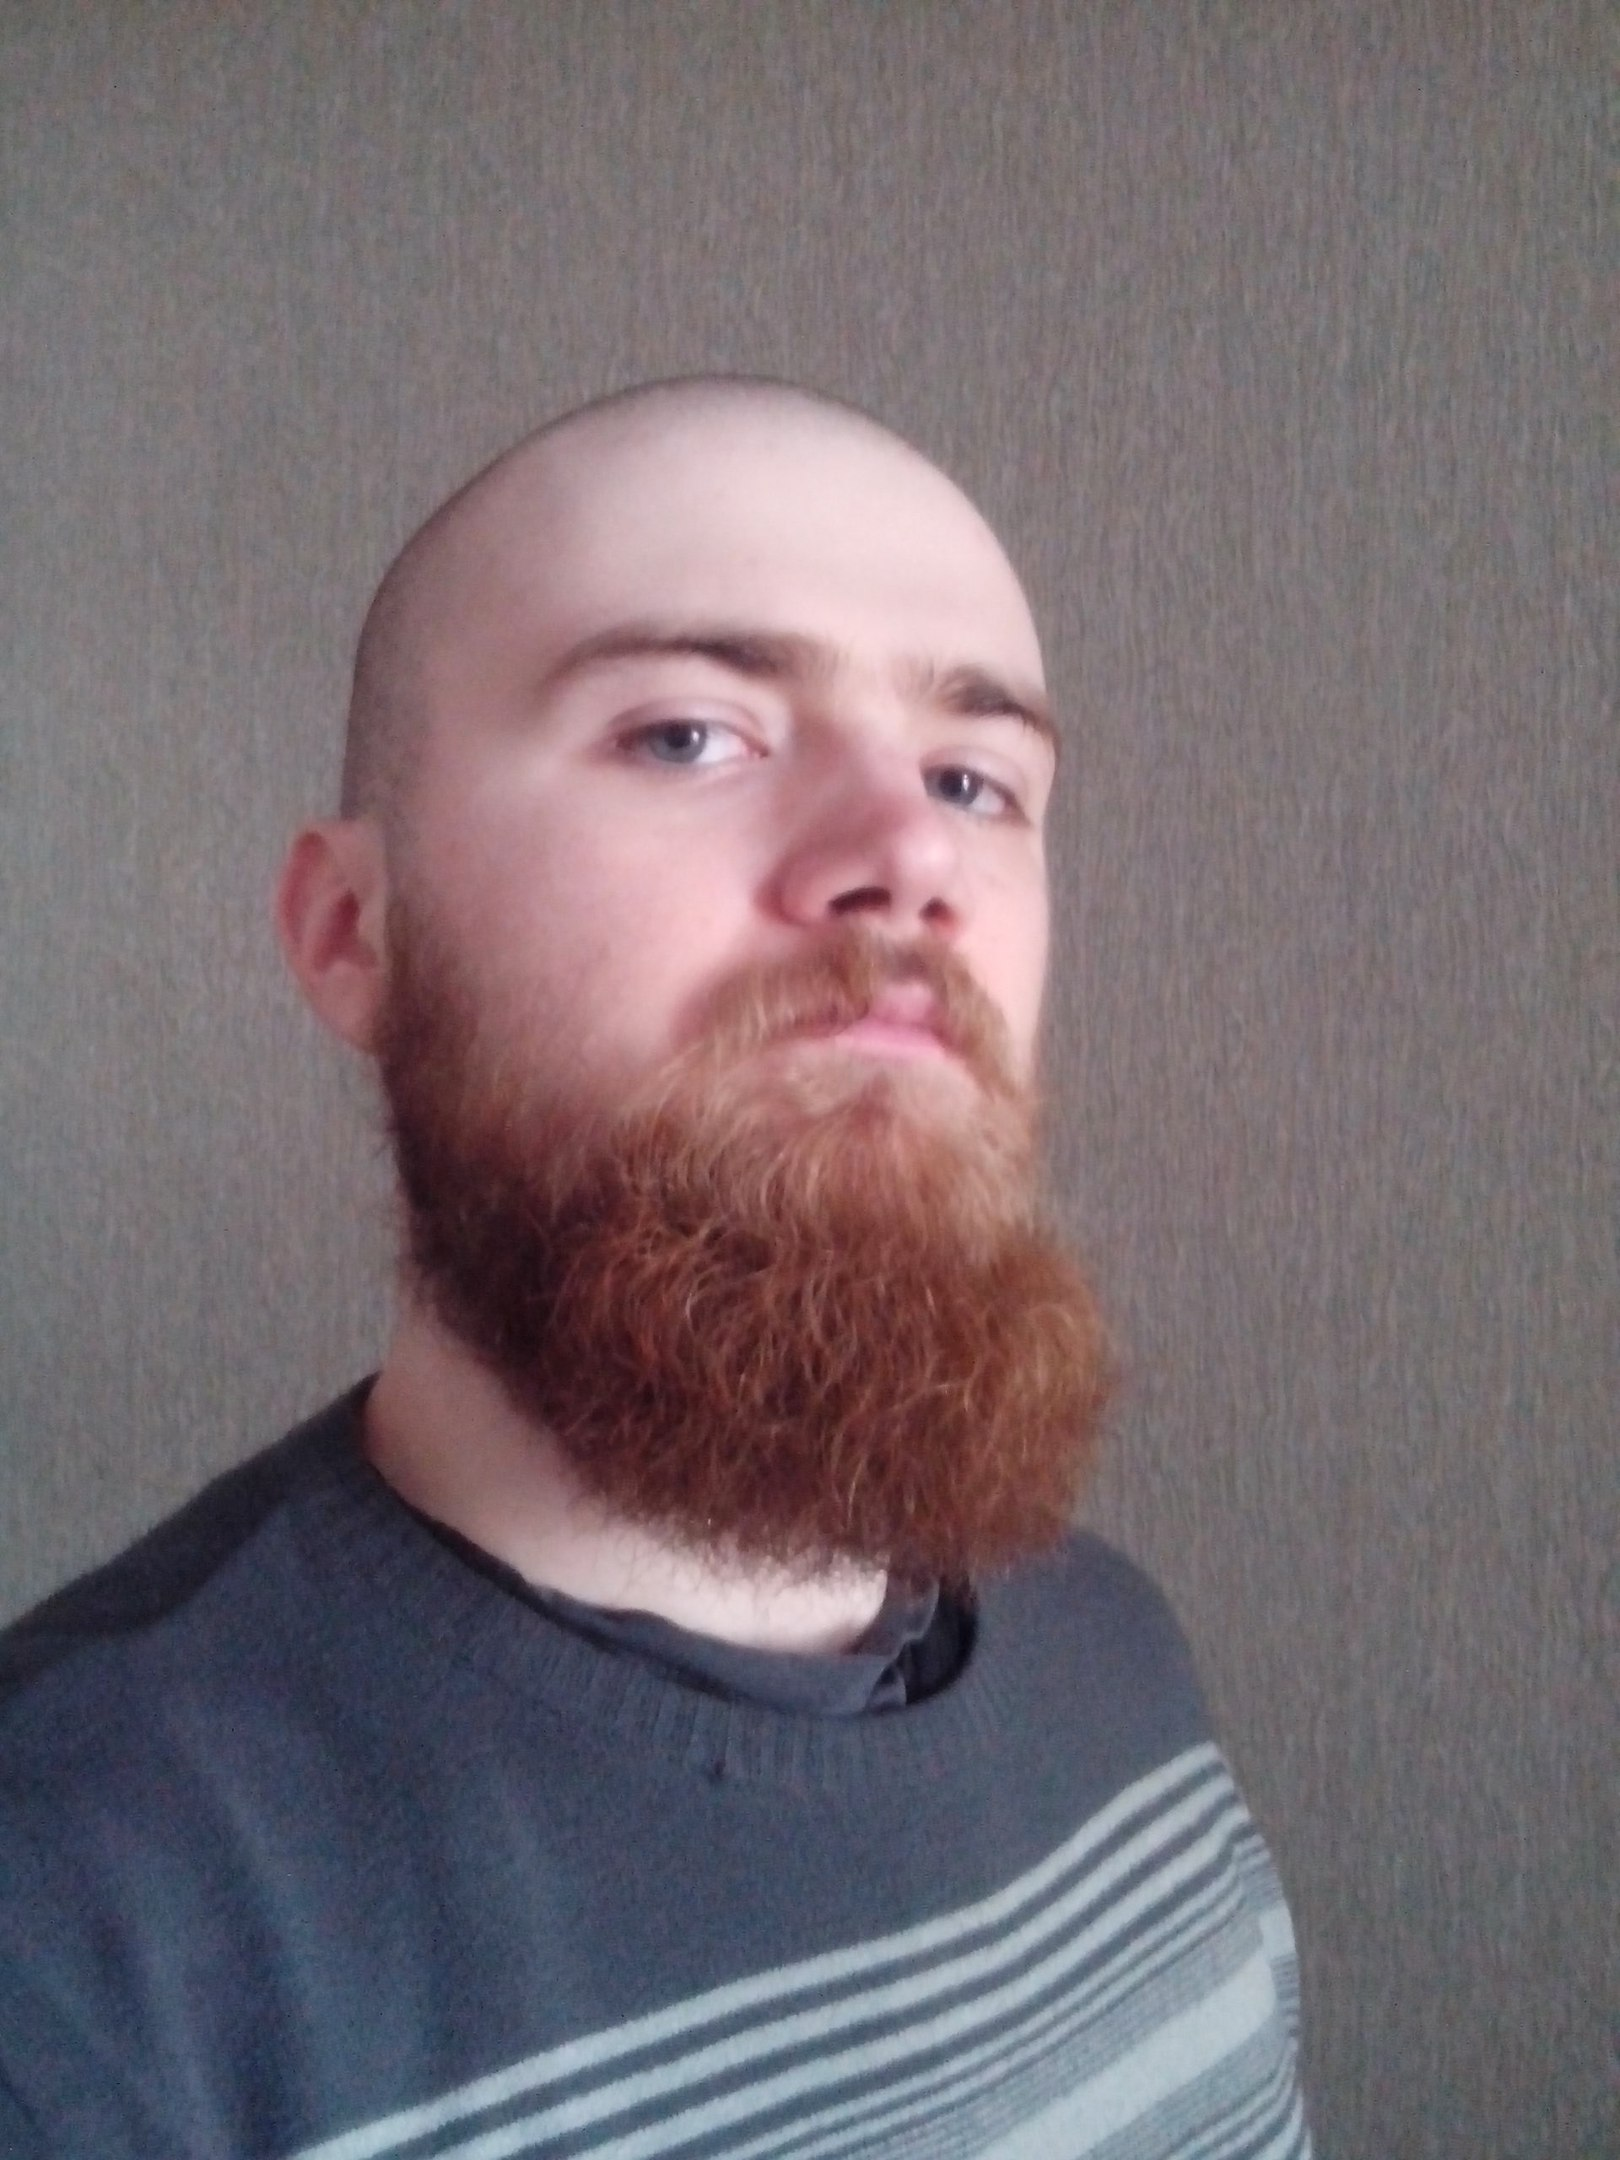 Long full red beard with shaved head